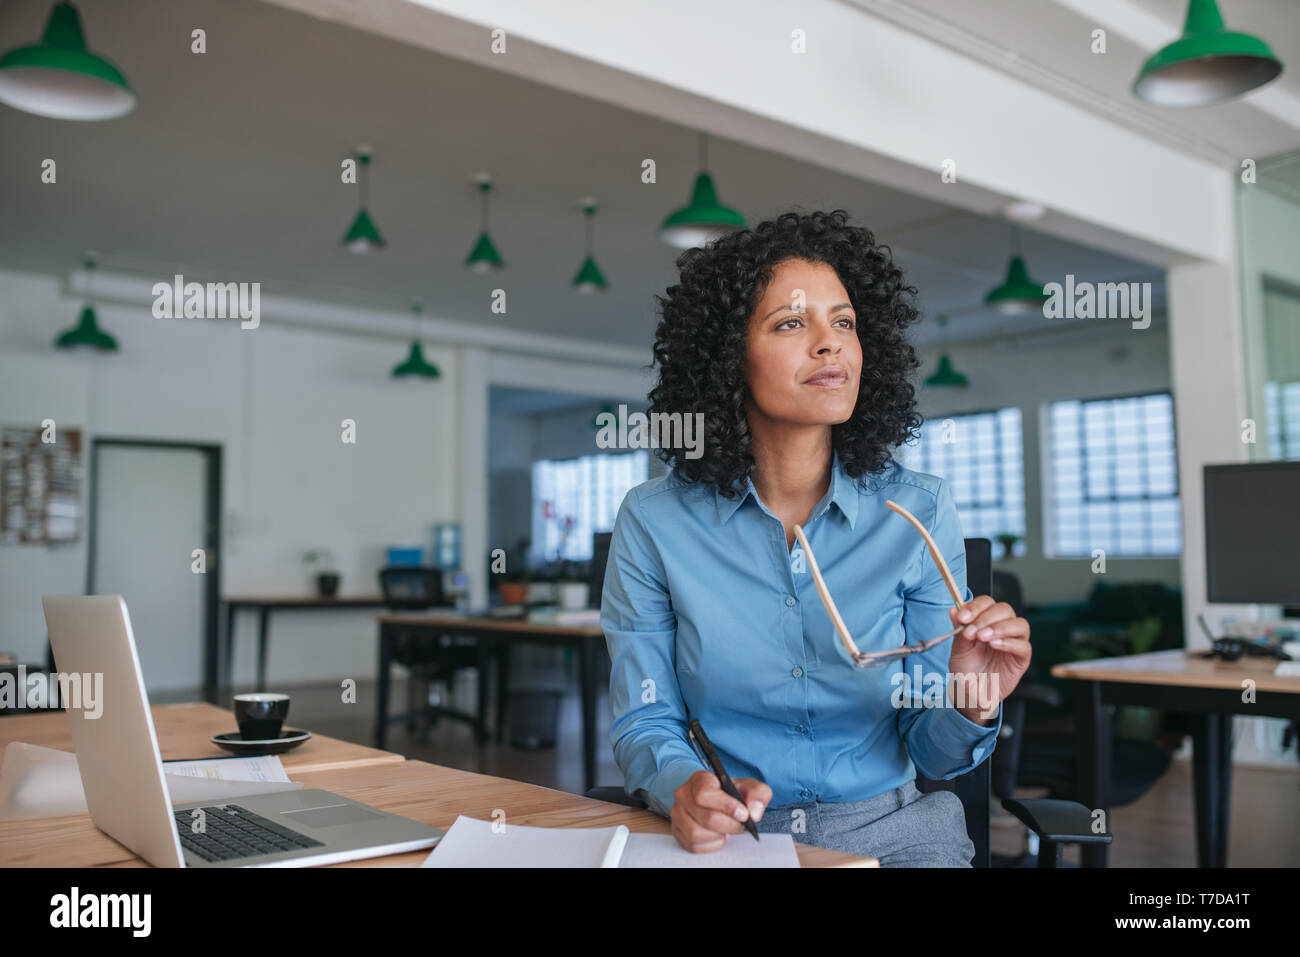 Smiling businesswoman writing ideas in a notebook at her desk - Stock Image